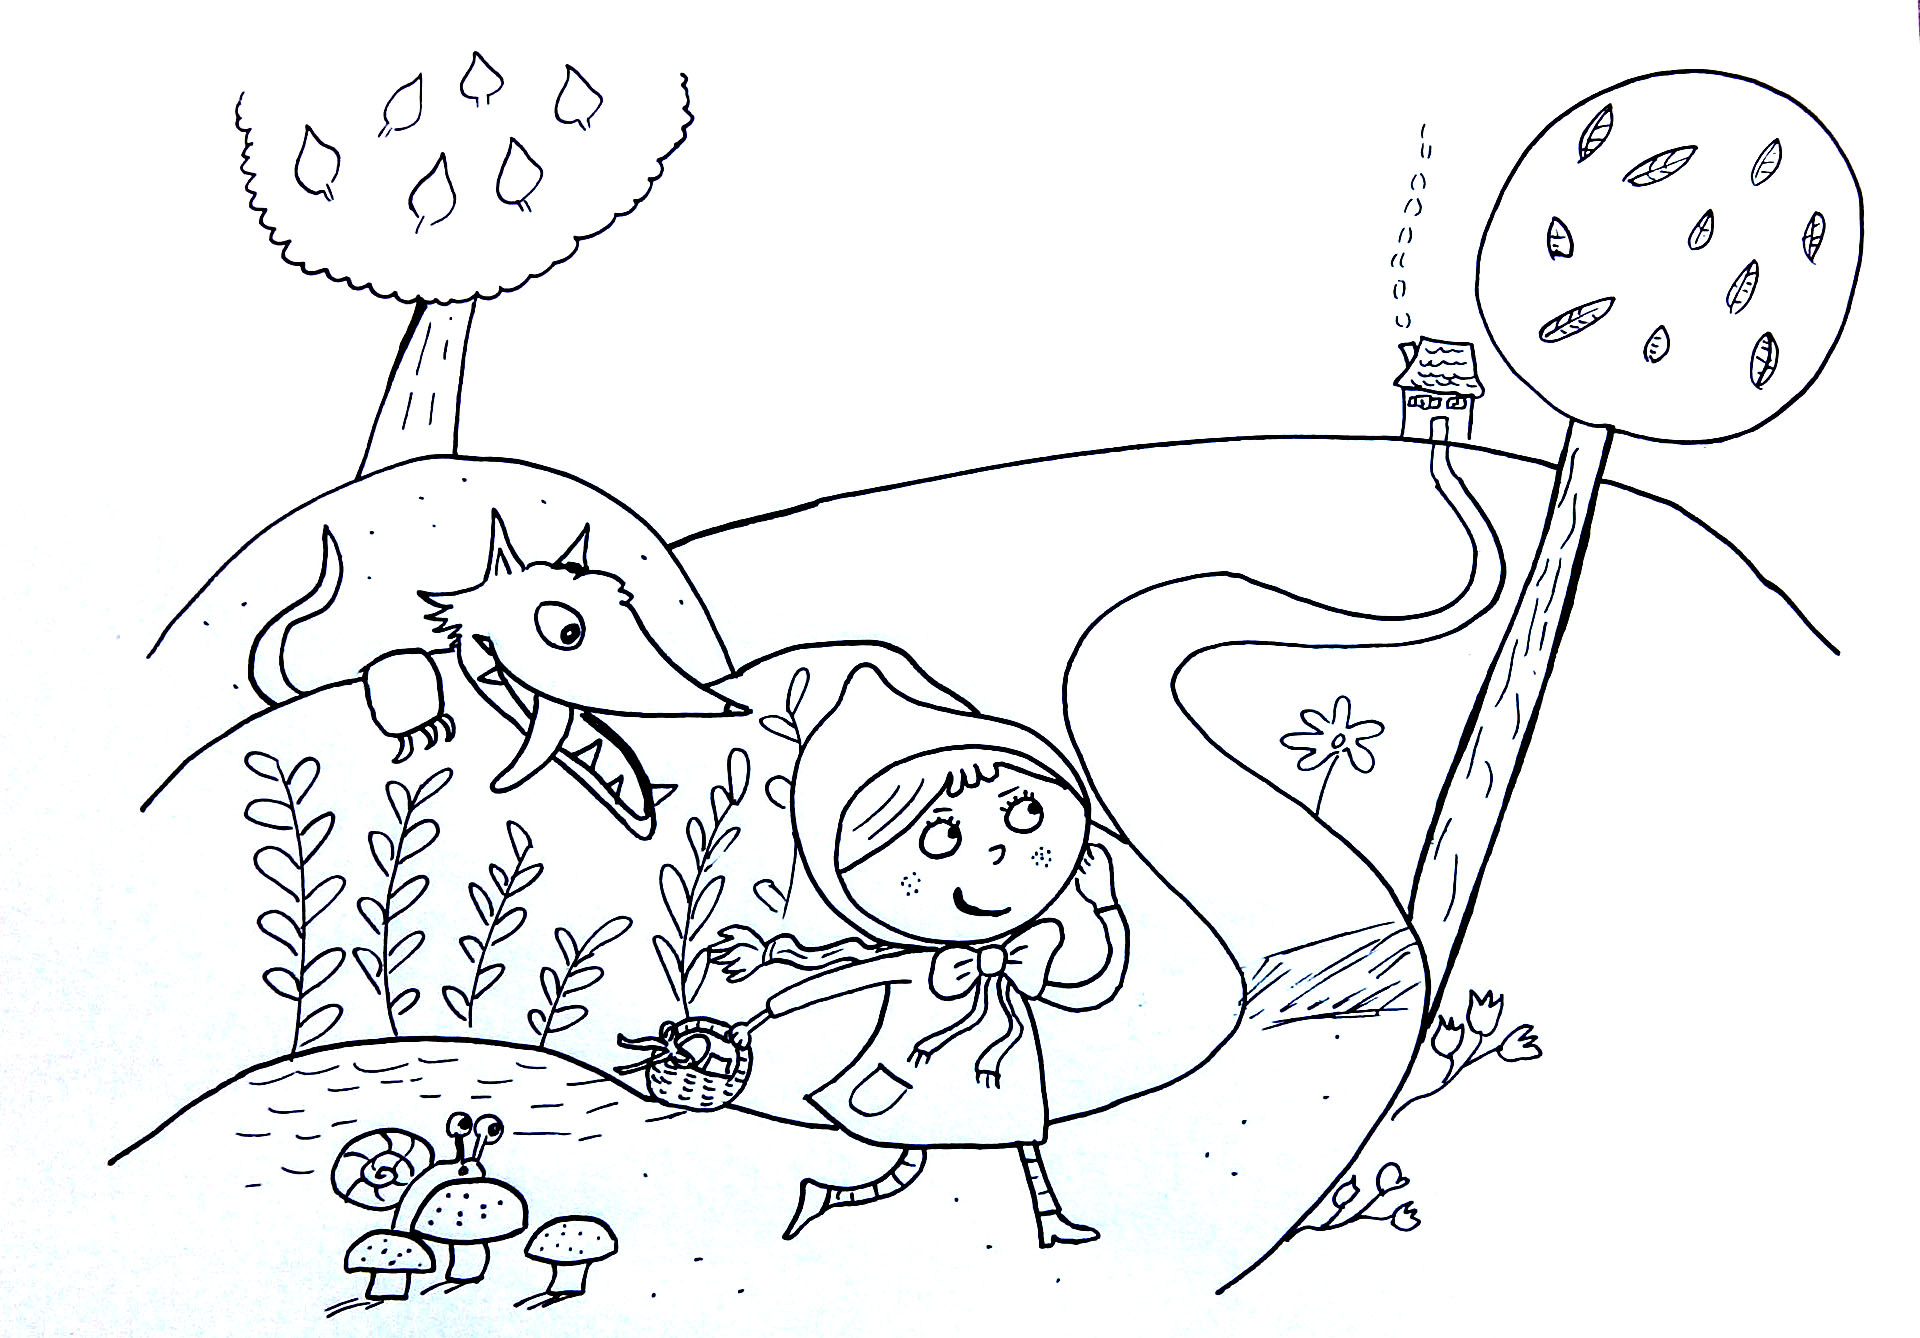 Free Tales coloring page to print and color